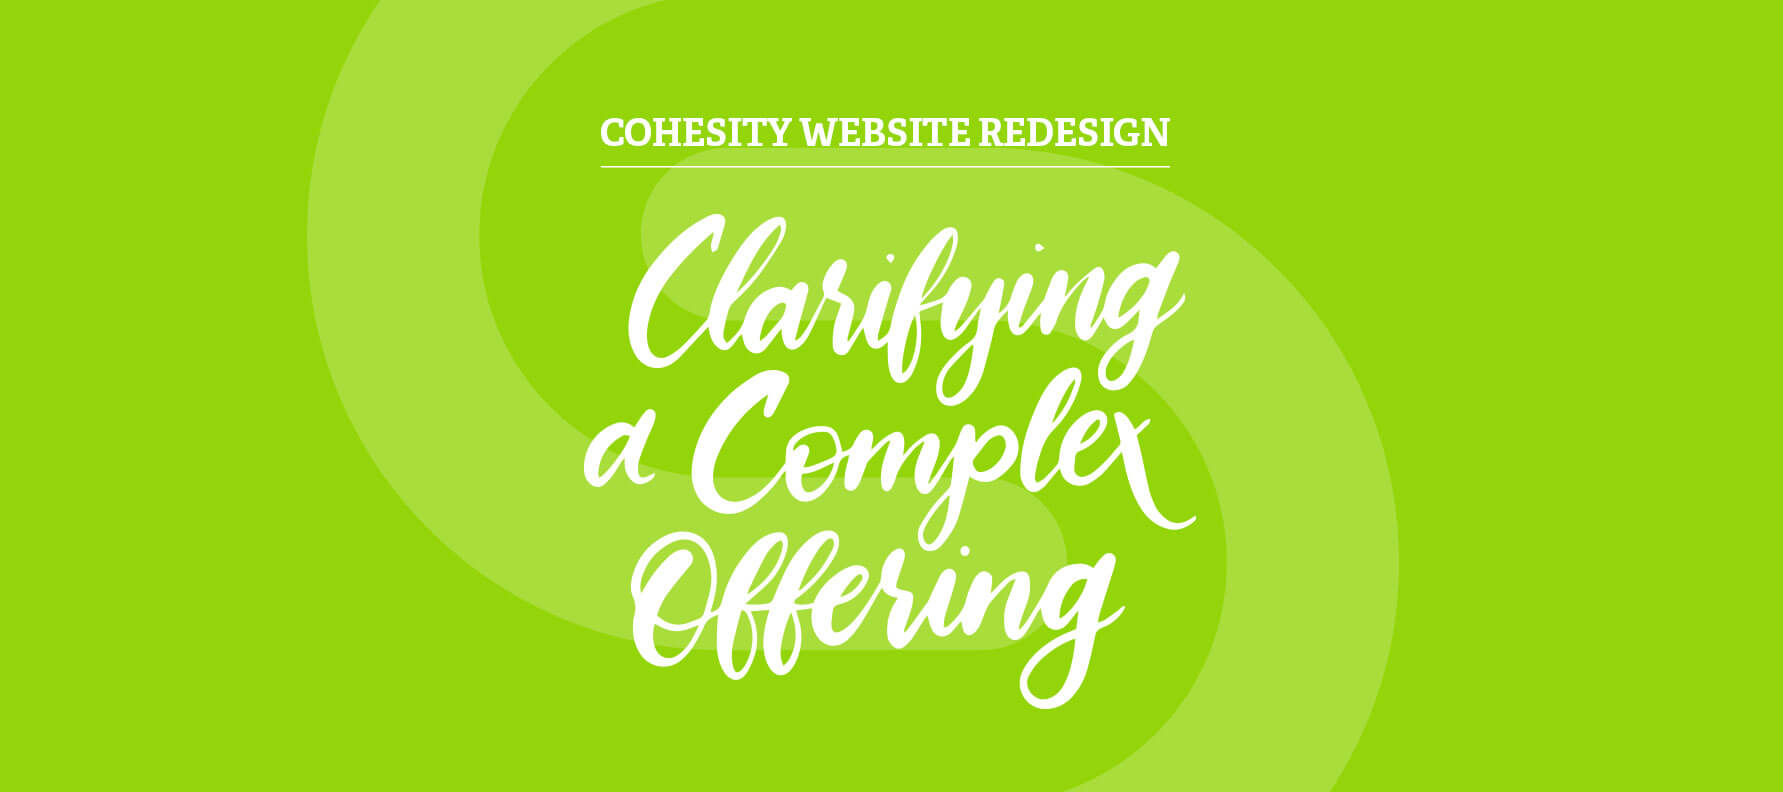 Cohesity Website Redesign, Clarifying a Complex Offering